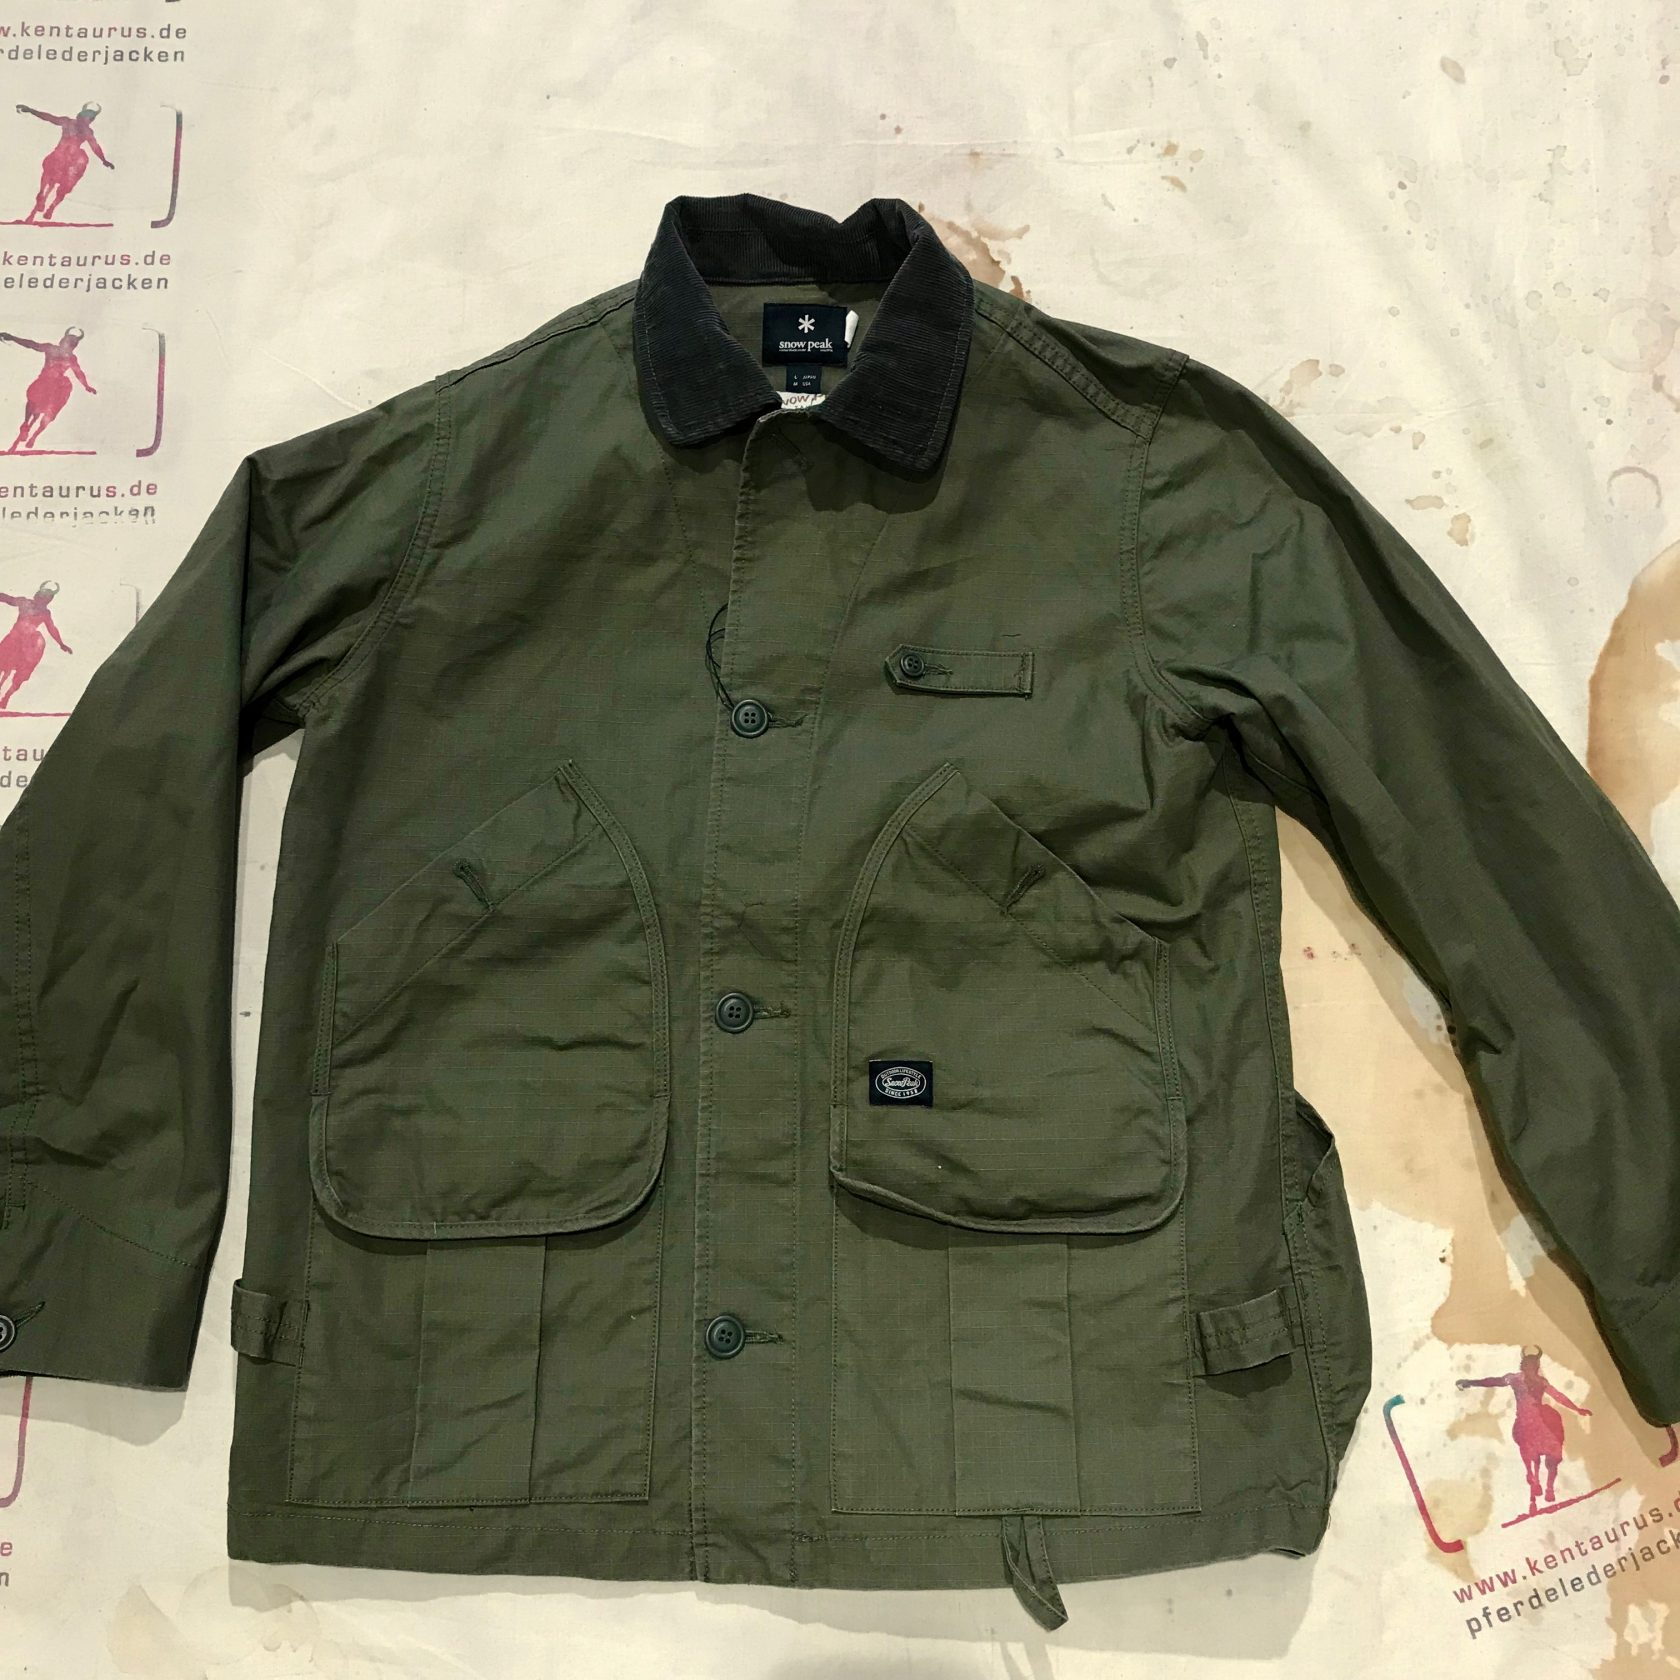 Snow Peak takibi coverall